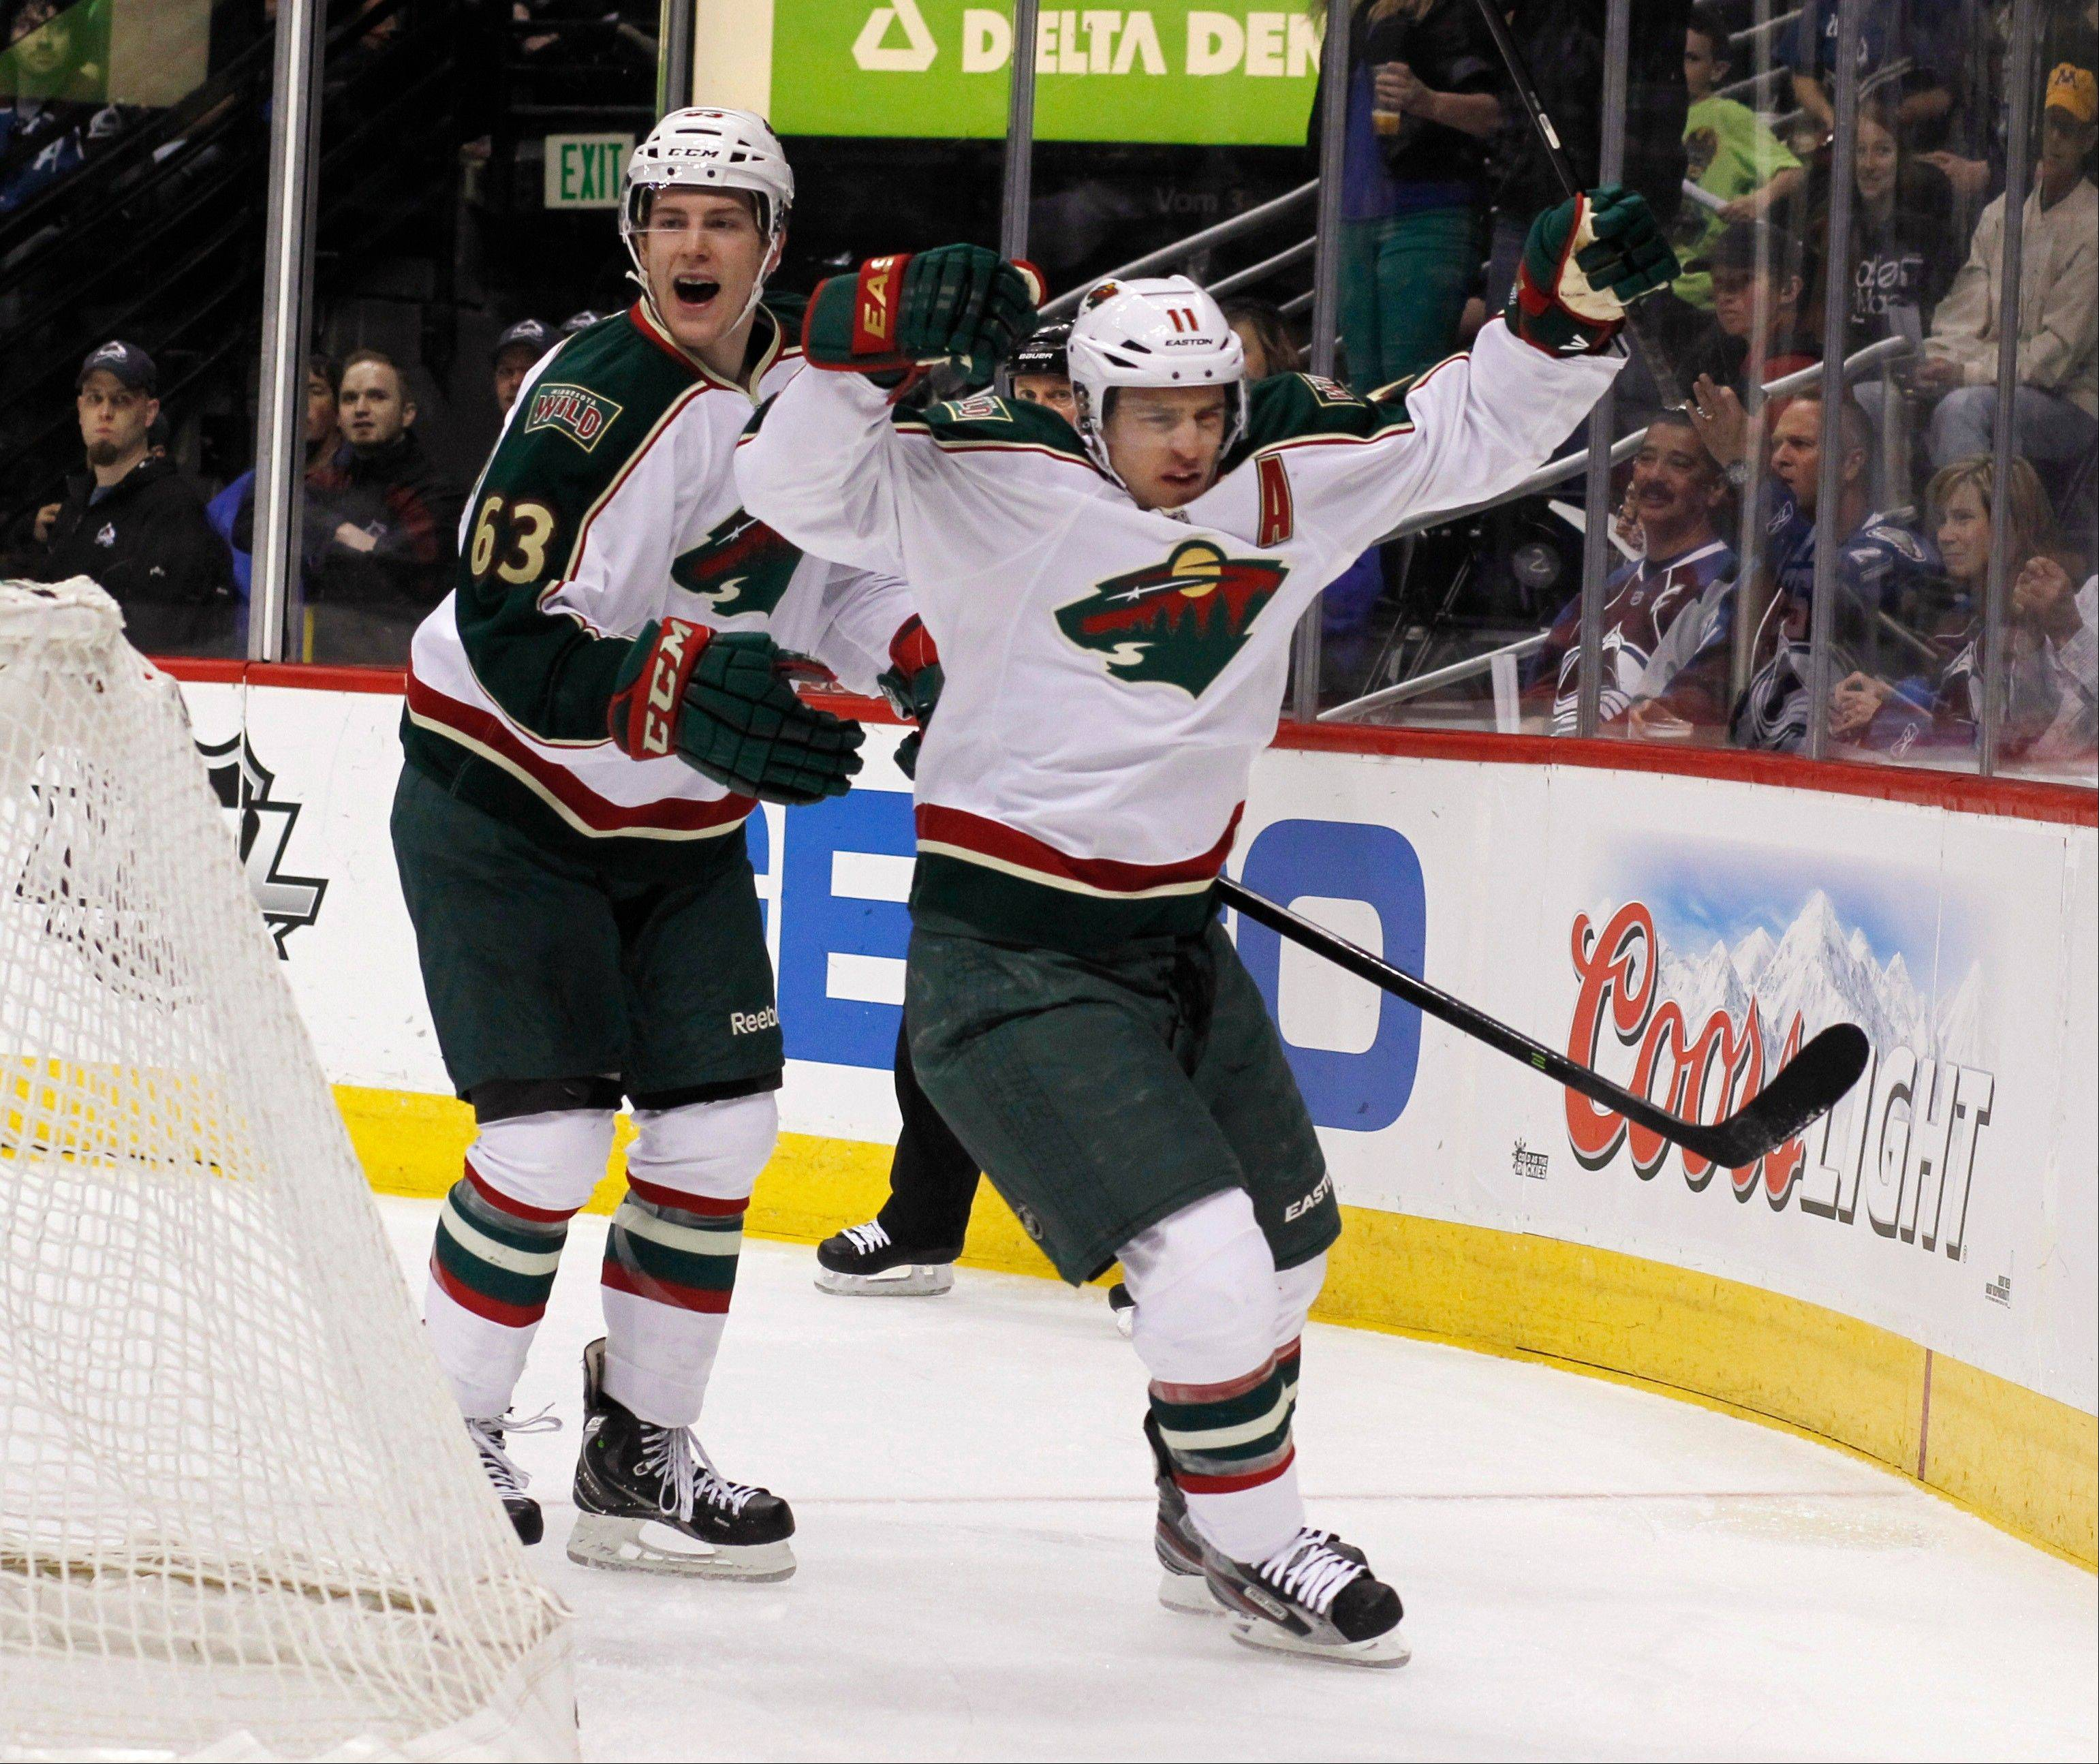 Minnesota Wild left wing Zach Parise, front, celebrates his goal with right wing Charlie Coyle against the Colorado Avalanche in the first period of an NHL hockey game in Denver on Saturday, April 27, 2013.